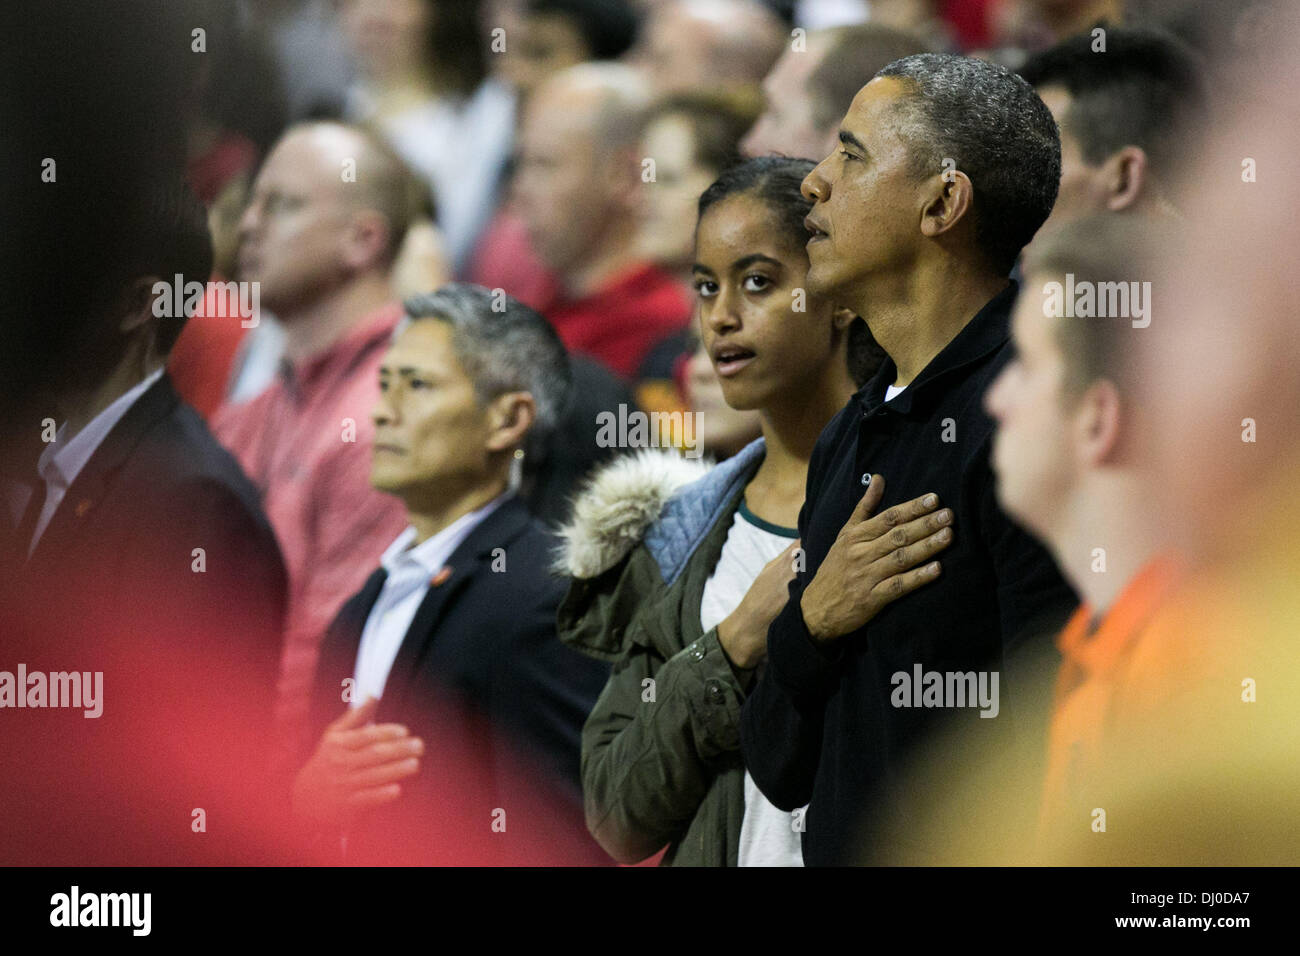 College Park, Maryland, USA. 17th Nov, 2013. (L-R): daughter Malia Obama and United States President Barack Obama stand during the National Anthem before the men's NCAA basketball match between University of Maryland and Oregon State University at the Comcast Center in College Park, Maryland, USA, 17 November 2013. Obama's brother-in-law Craig Robinson is the head coach of the Oregon State team. Credit: Drew Angerer / Pool via CNP/dpa/Alamy Live News - Stock Image